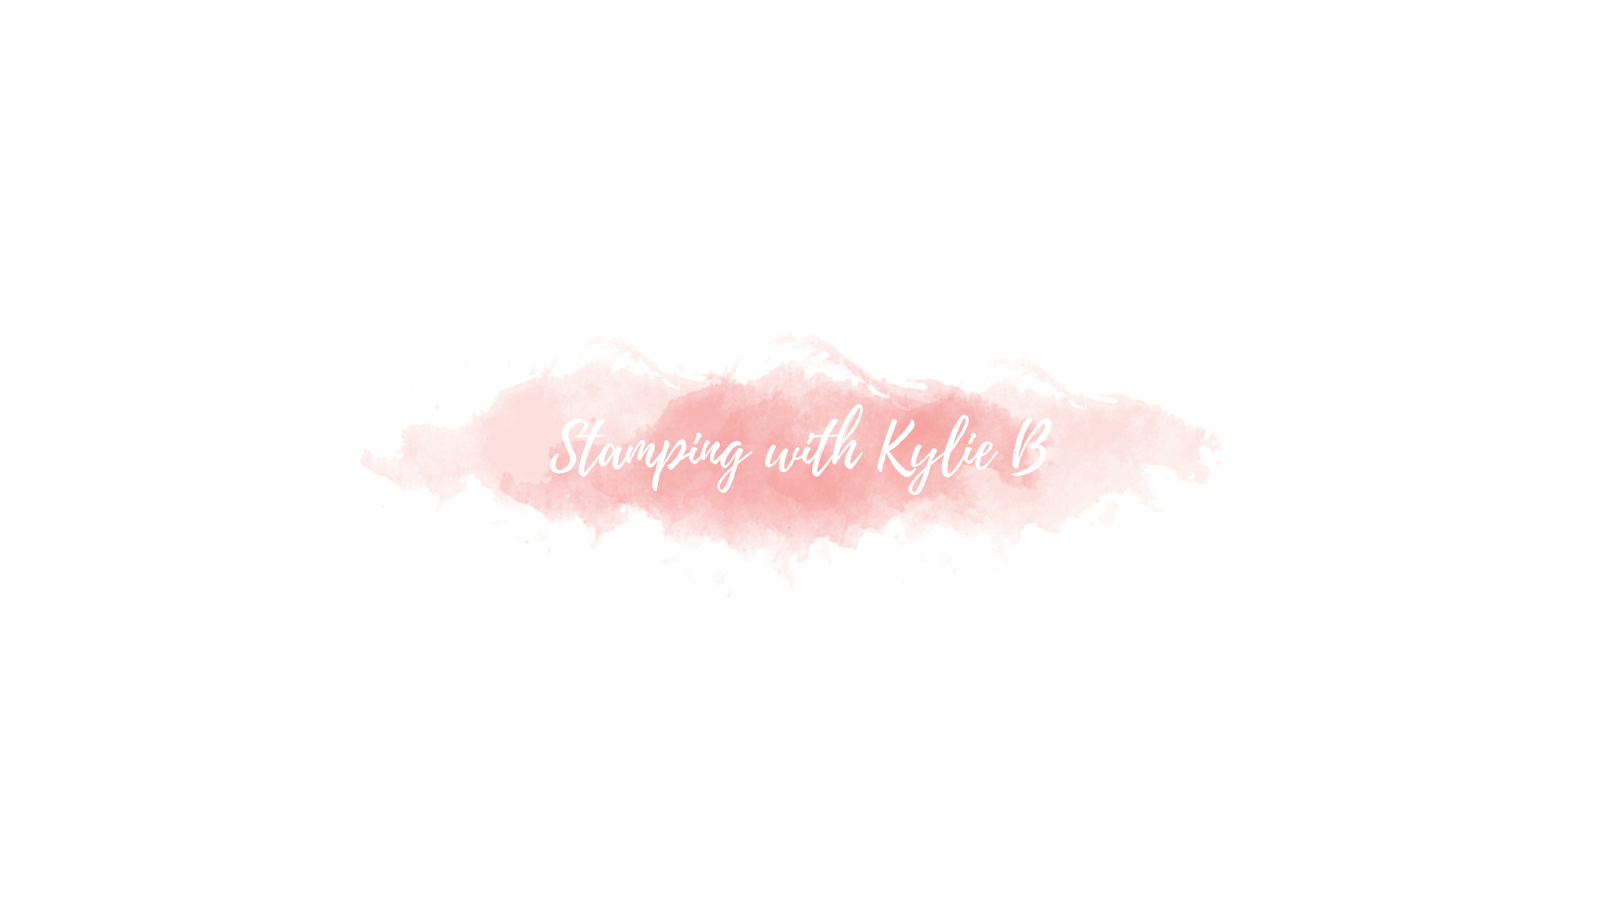 Stampin Up with Kylie B